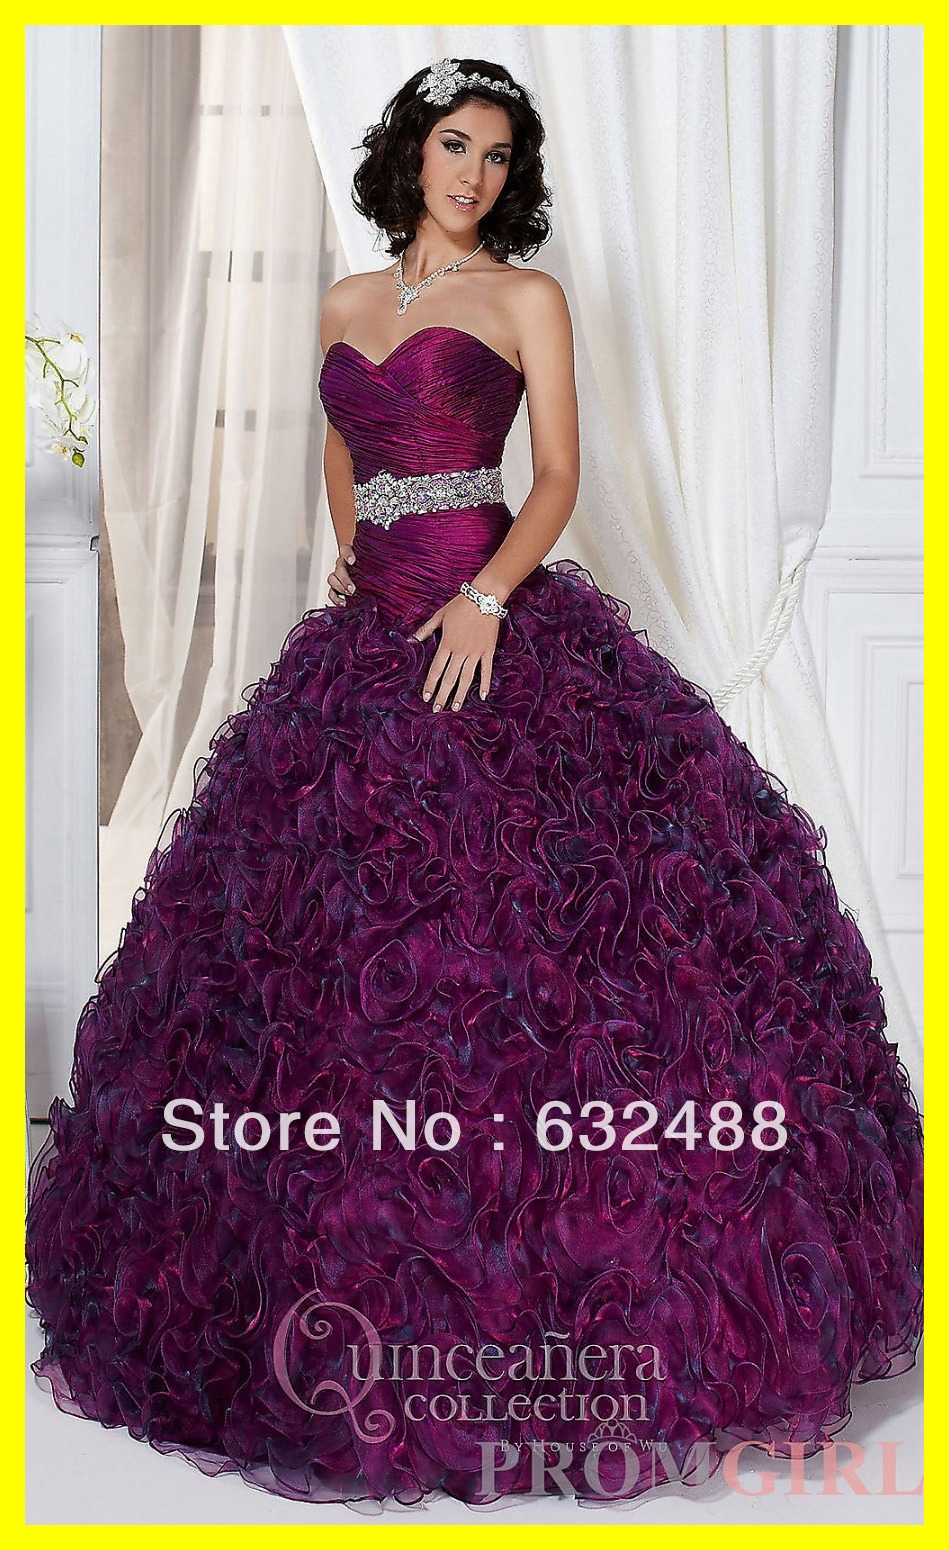 Homecoming dresses houston tx formal dresses for Wholesale wedding dresses dallas tx